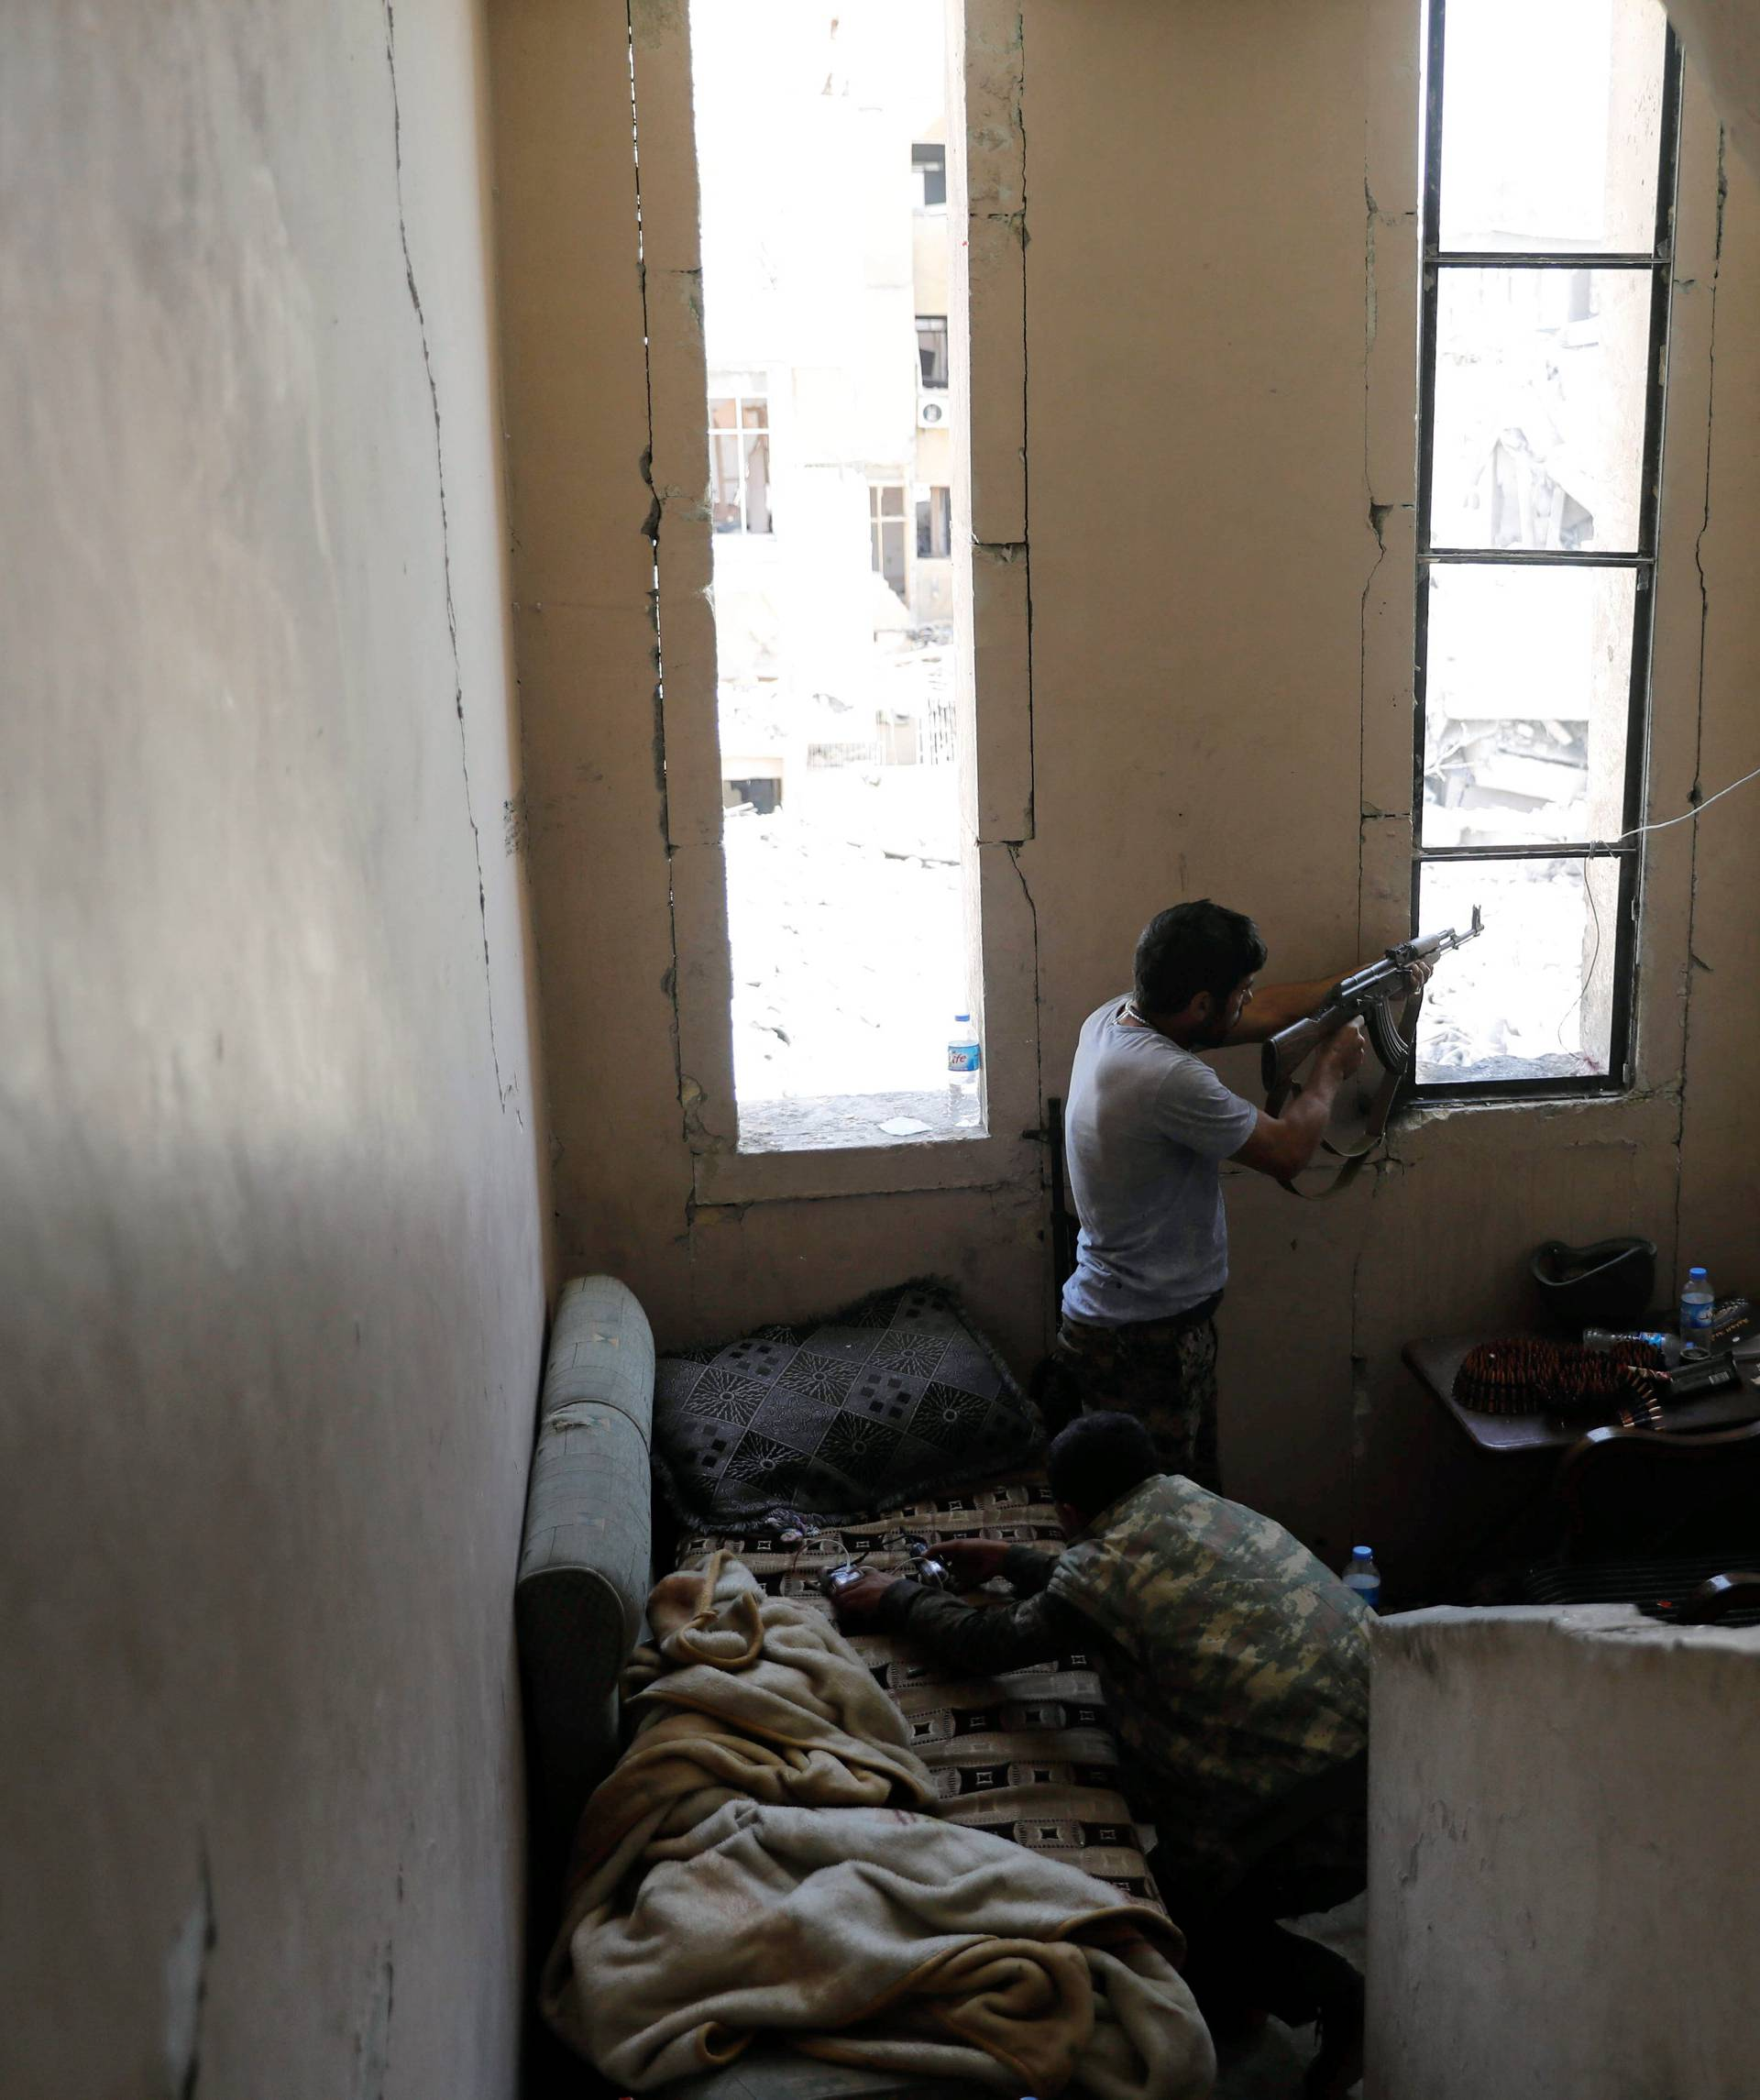 A fighter of the Syrian Democratic Forces fires his weapon towards the positions of the Islamic state militants in the National Hospital, at the frontline in Raqqa